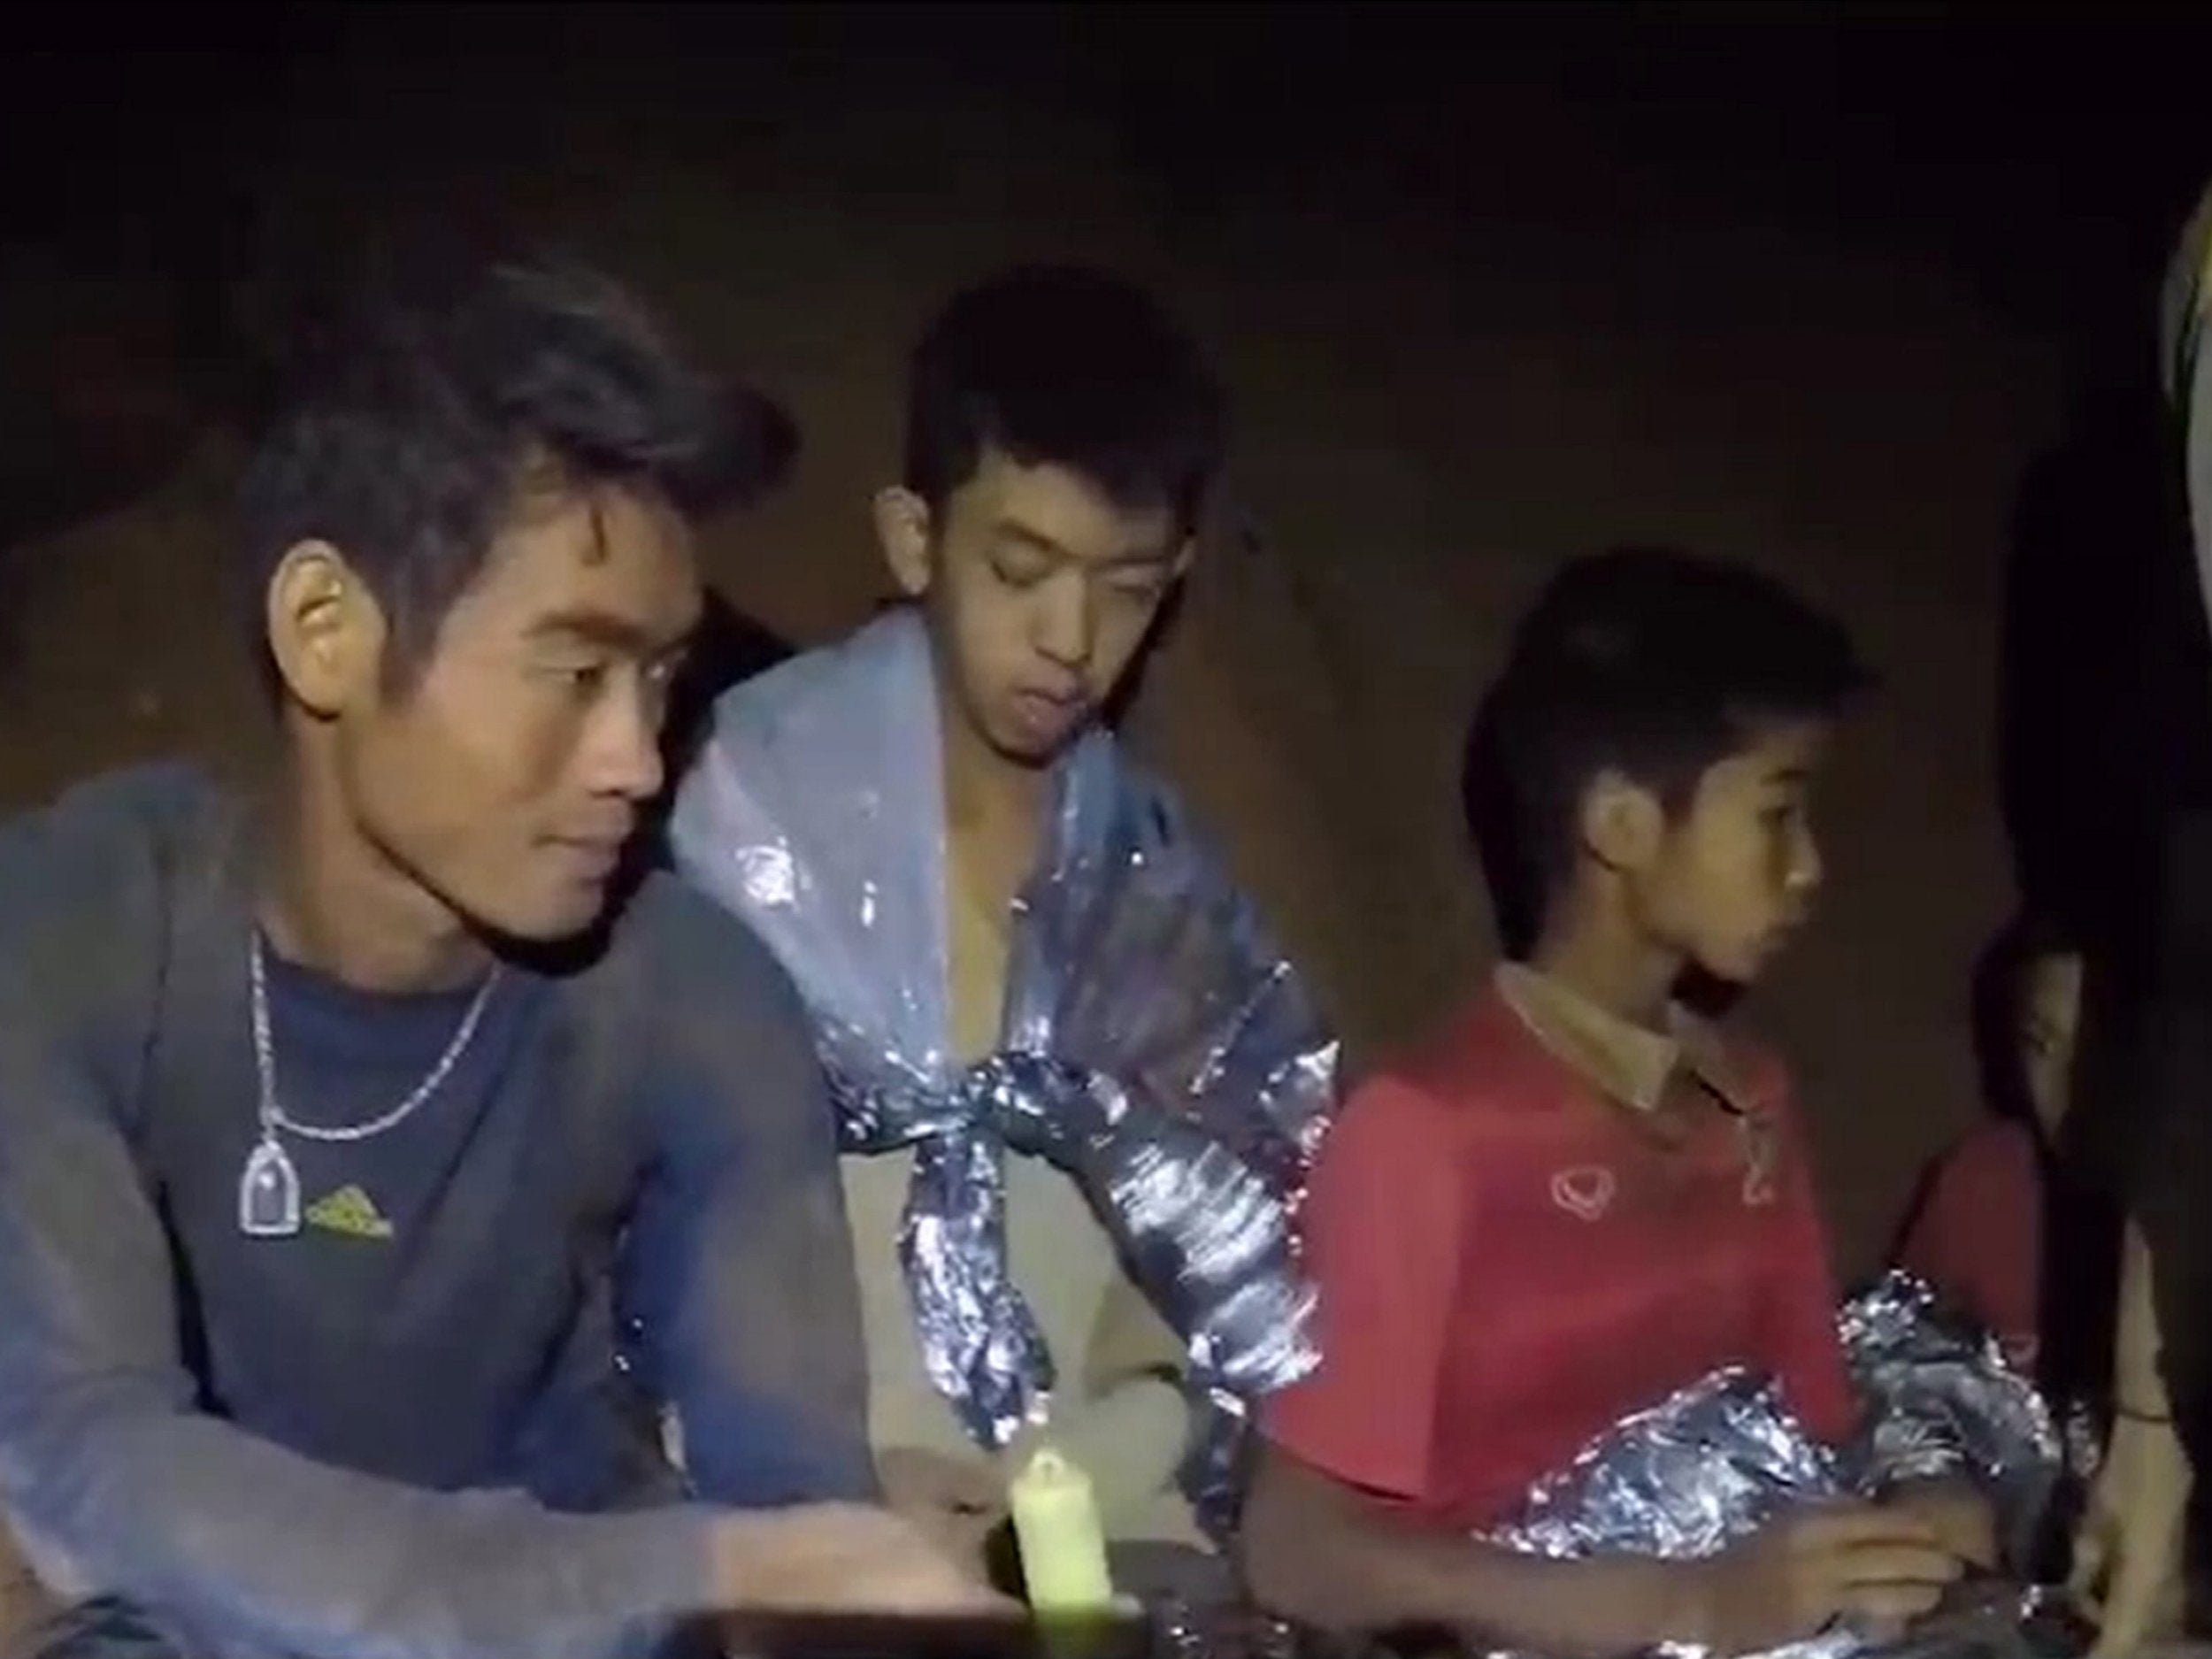 Fifa president invites boys trapped in Thai cave to attend World Cup Final if they are rescued in time